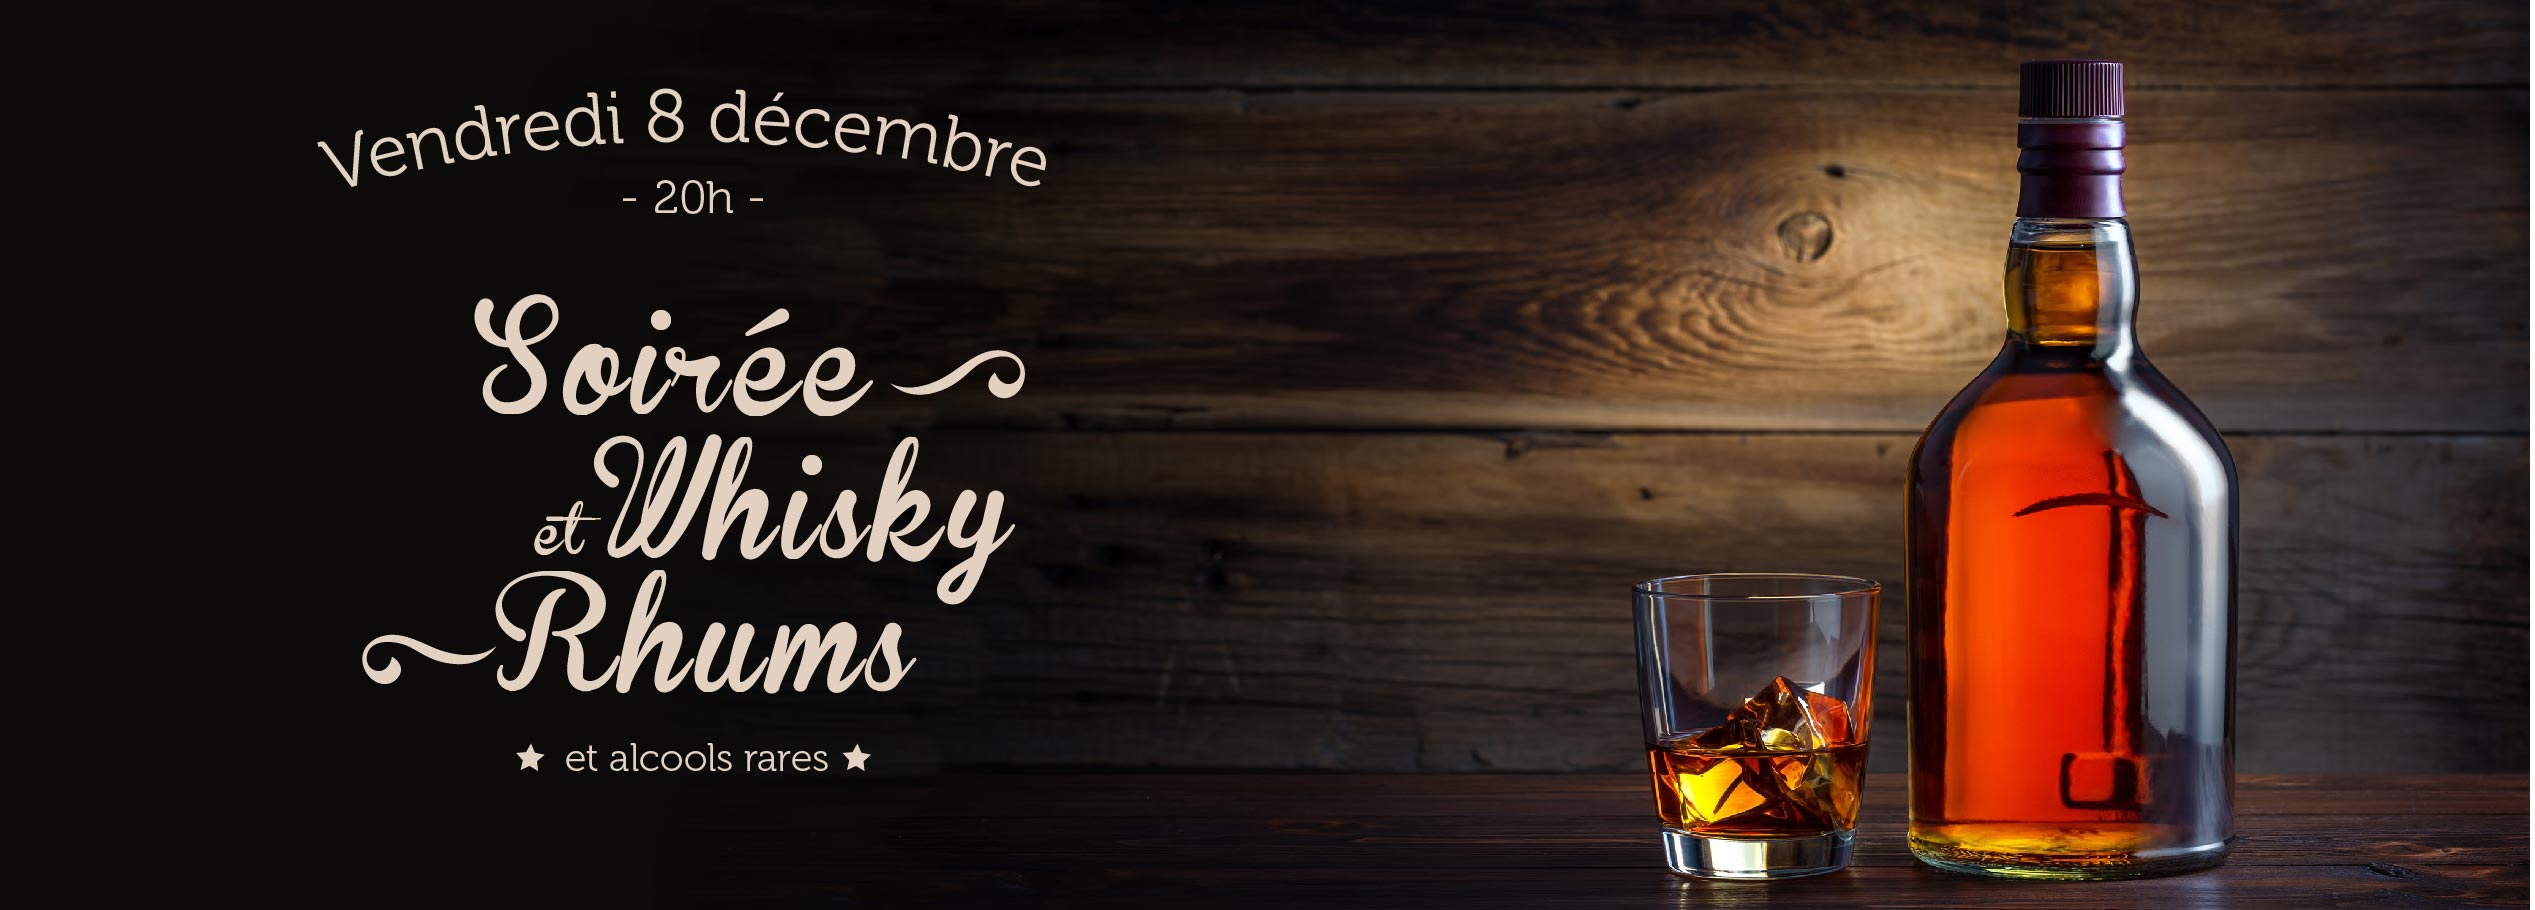 soiree whisky&rhum-01